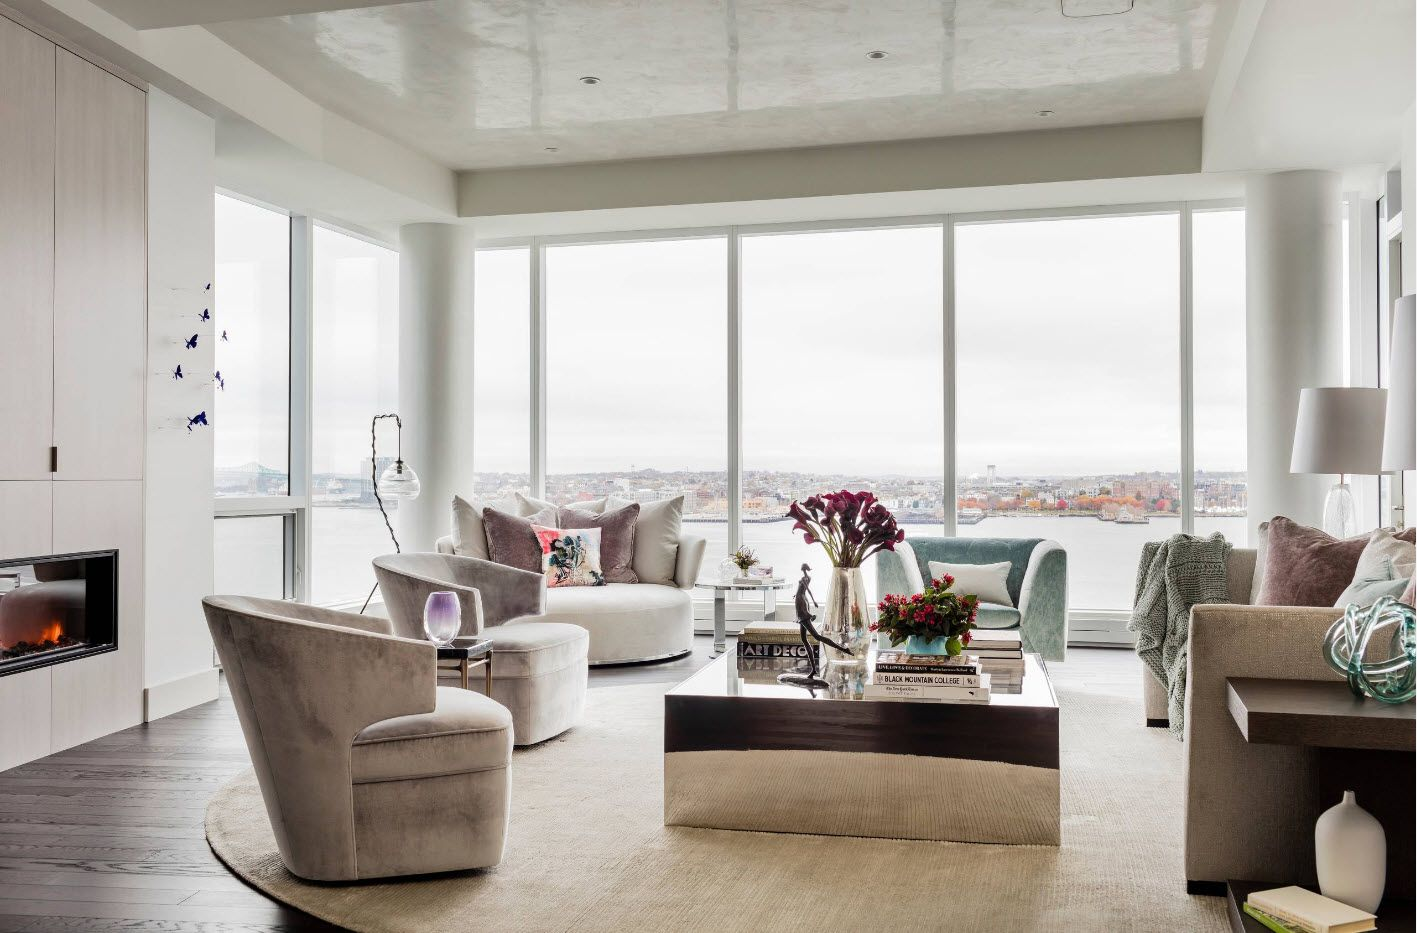 Panoramic windows all round the spacious living room